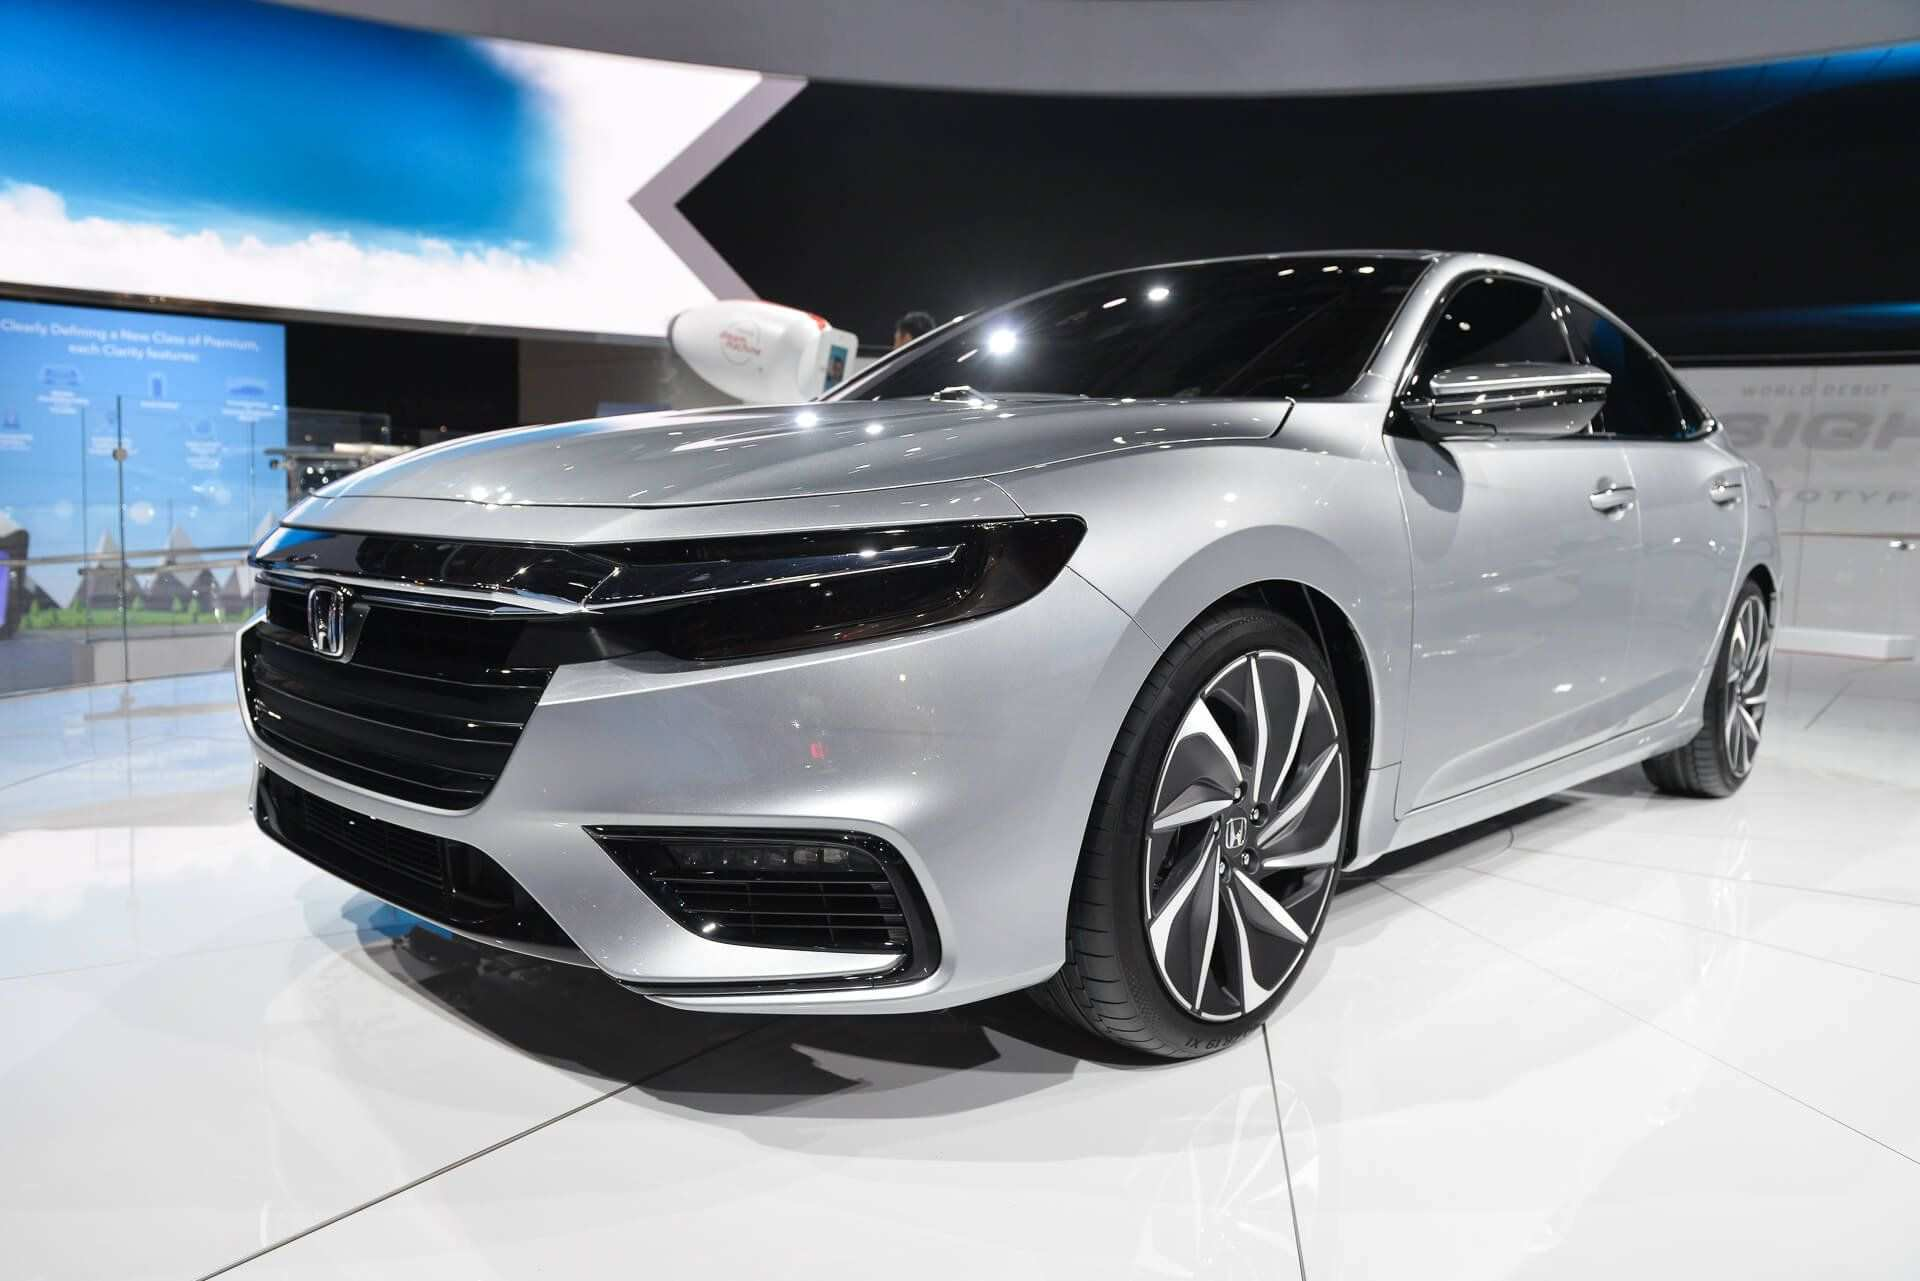 13 Concept of Honda Civic 2020 Model Specs for Honda Civic 2020 Model